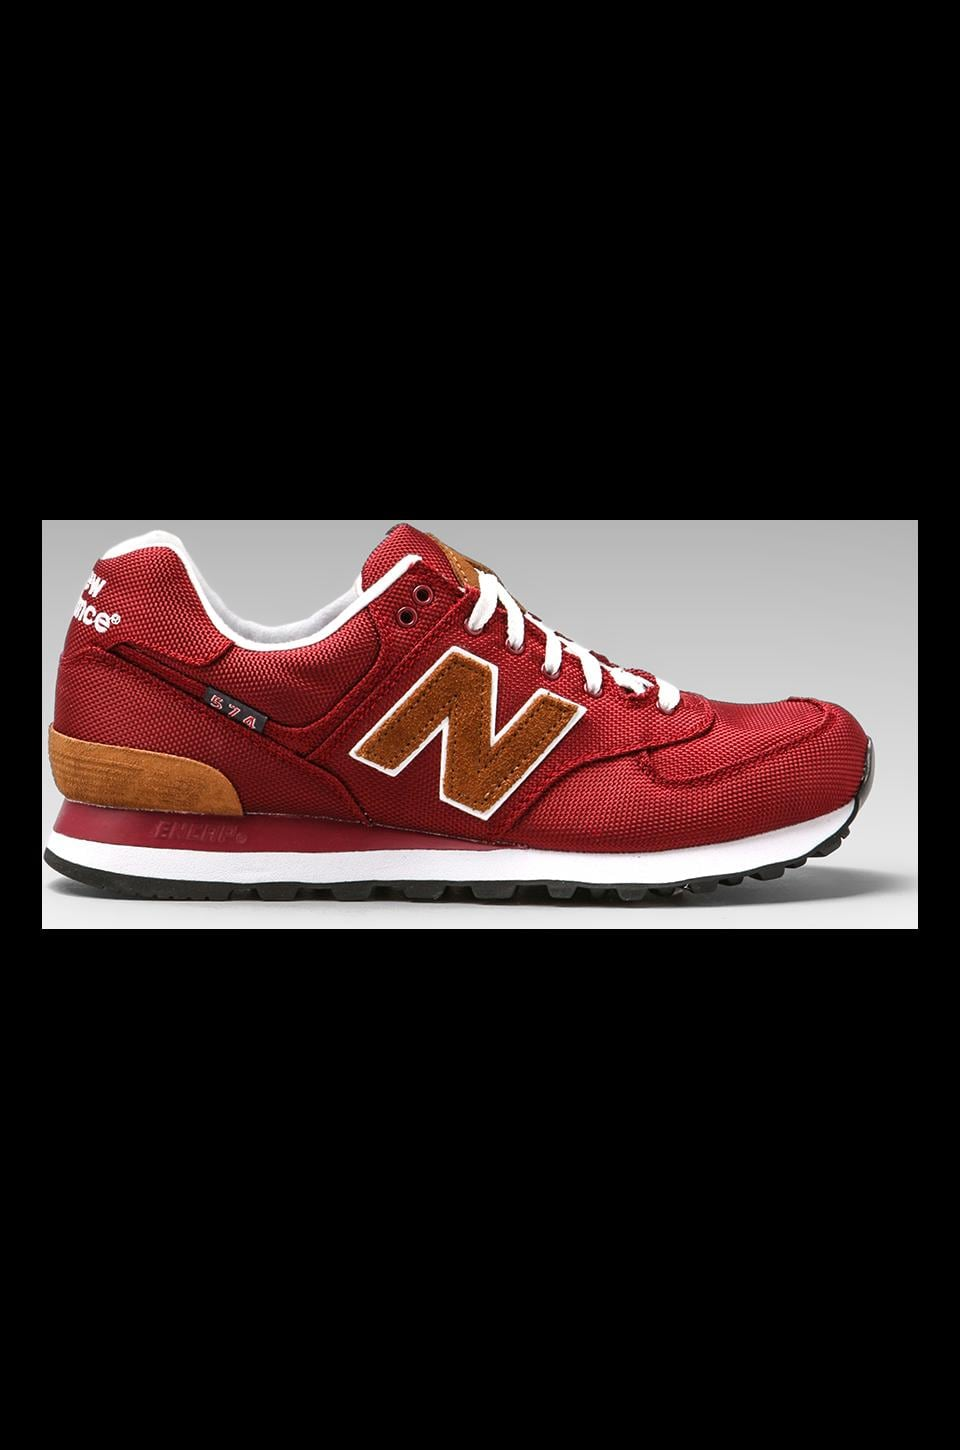 New Balance ML574 in Maroon w/ Brown